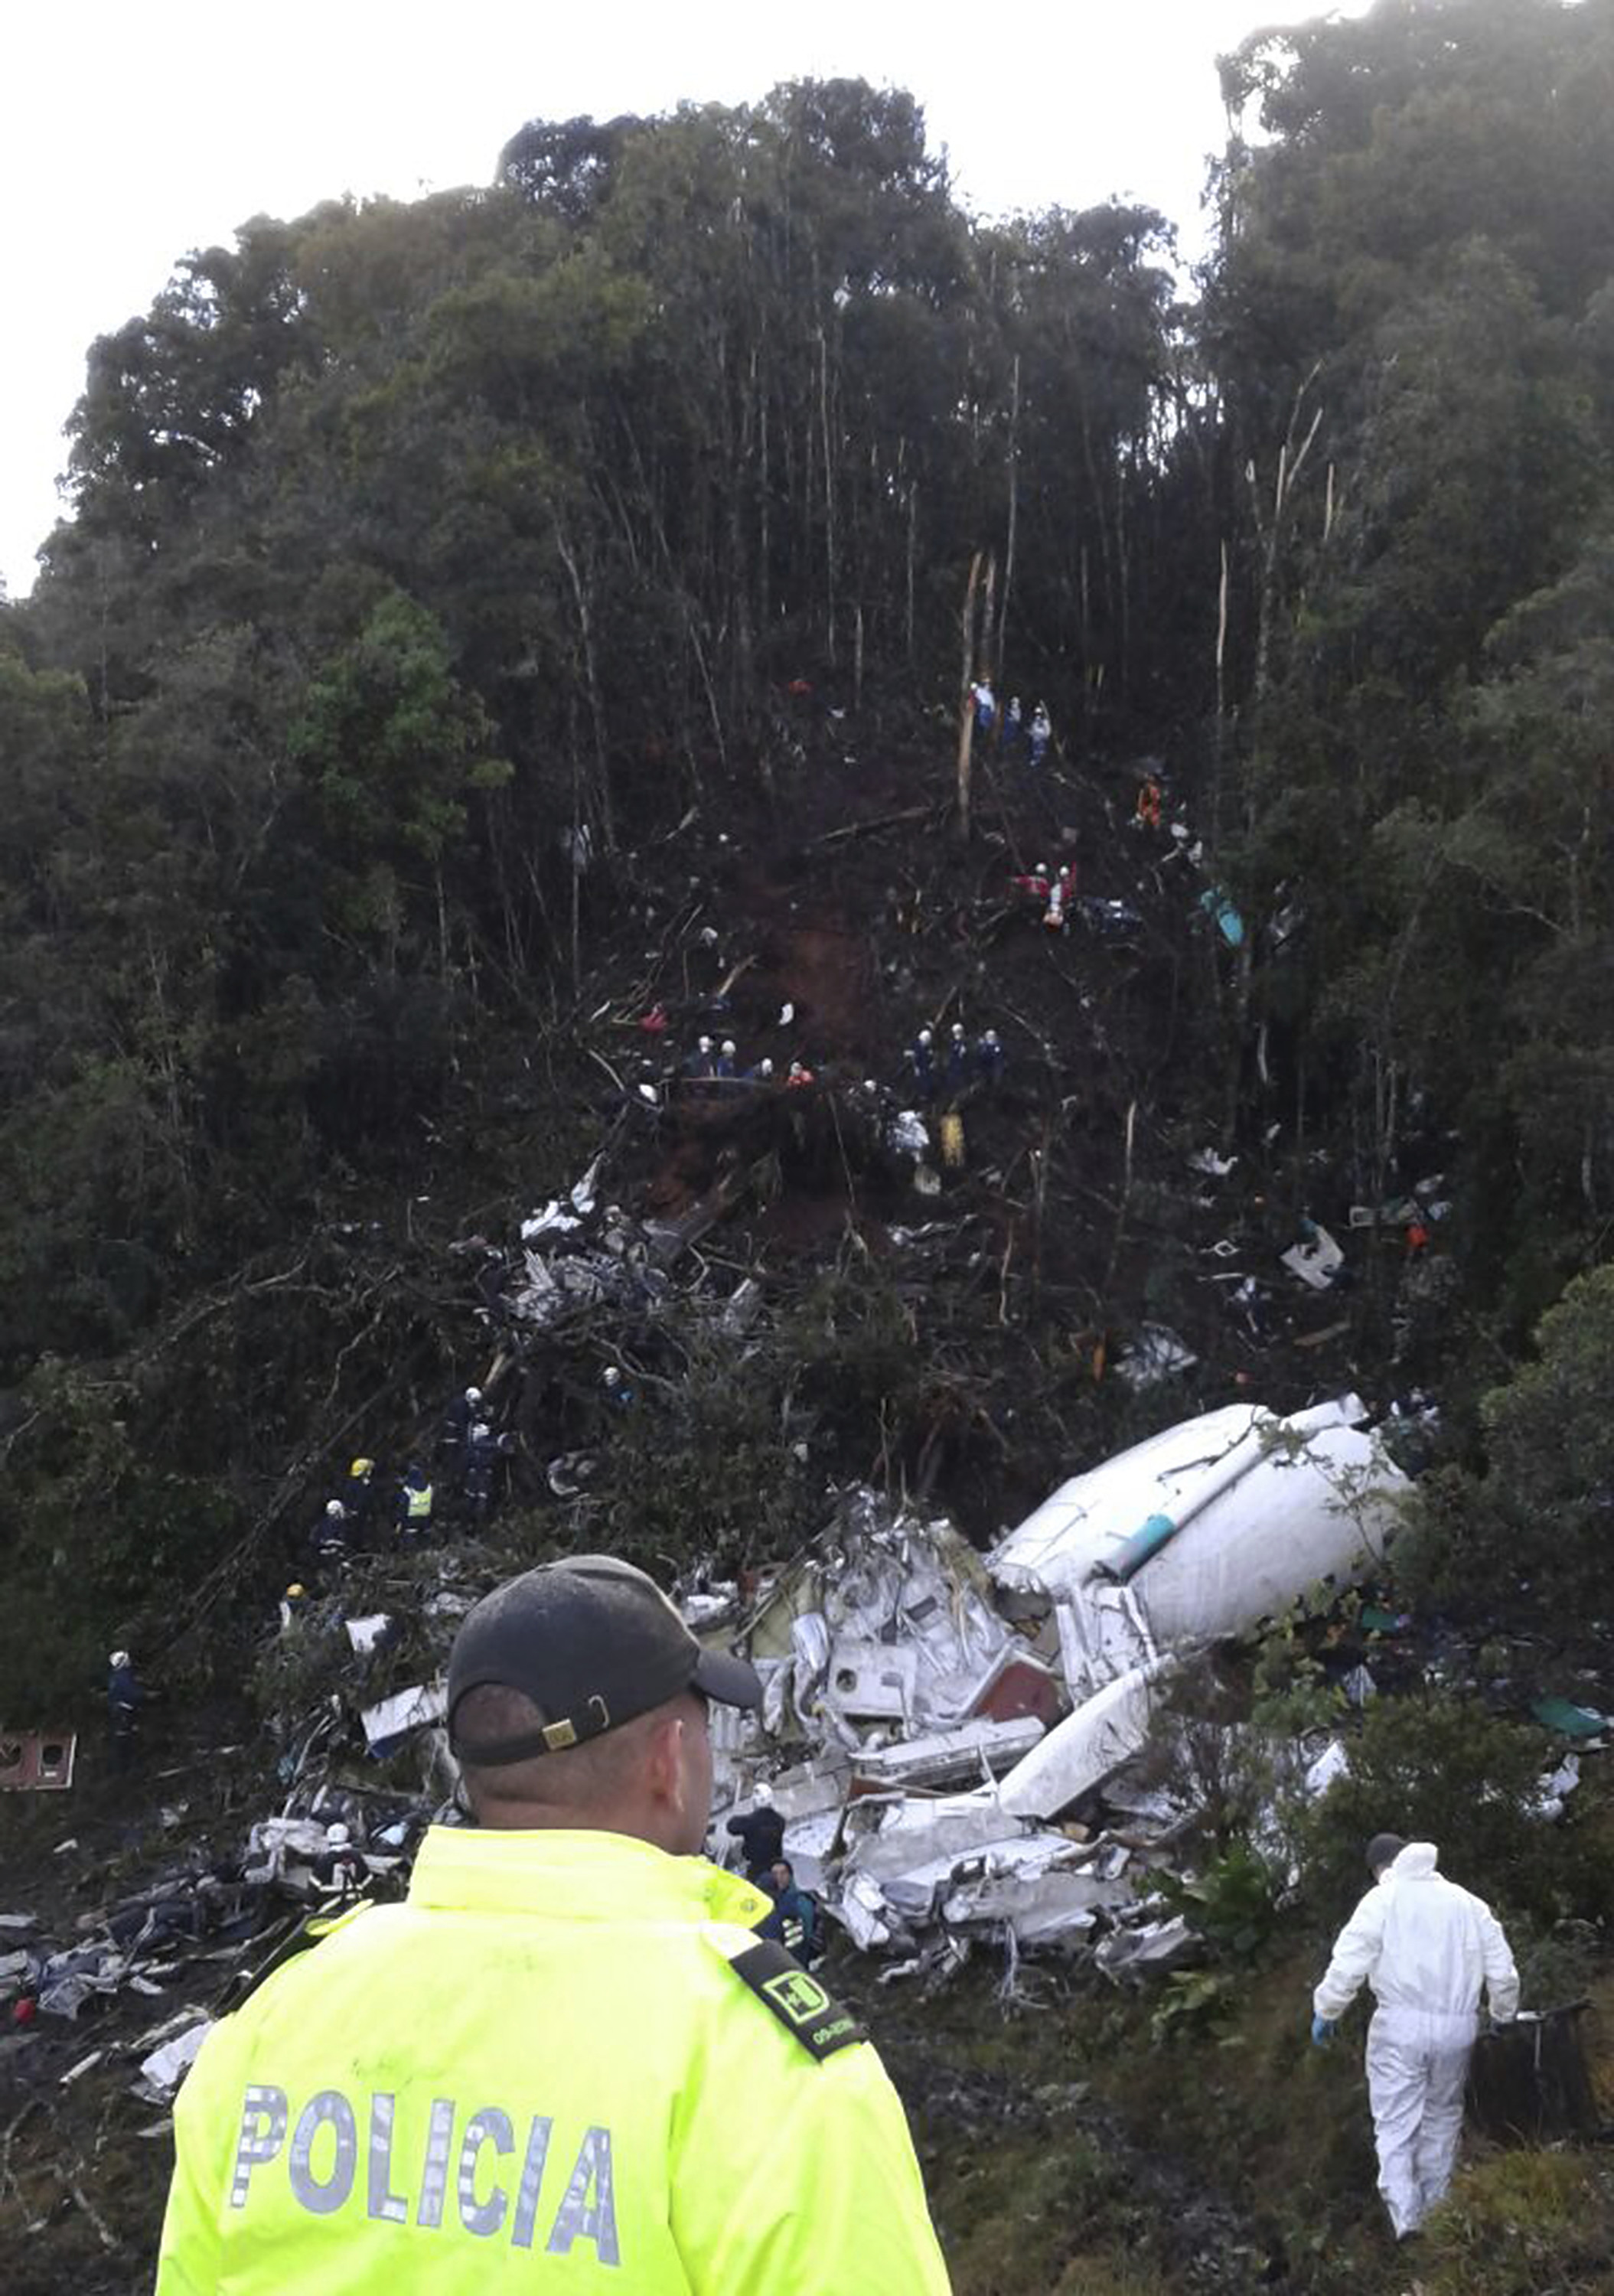 LA UNION, COLOMBIA - NOVEMBER 29: In this handout picture by Defensa Civil Antioquia Police officers work on the wreckage of the Lamia plane wich transported Brazilian football team Chapecoense at El Gordo Mount on November 29, 2016 in La Union, Colombia. On the crash 76 people were killed and 6 survived. (Photo by Defensa Civil Antioquia/LatinContent/Getty Images)